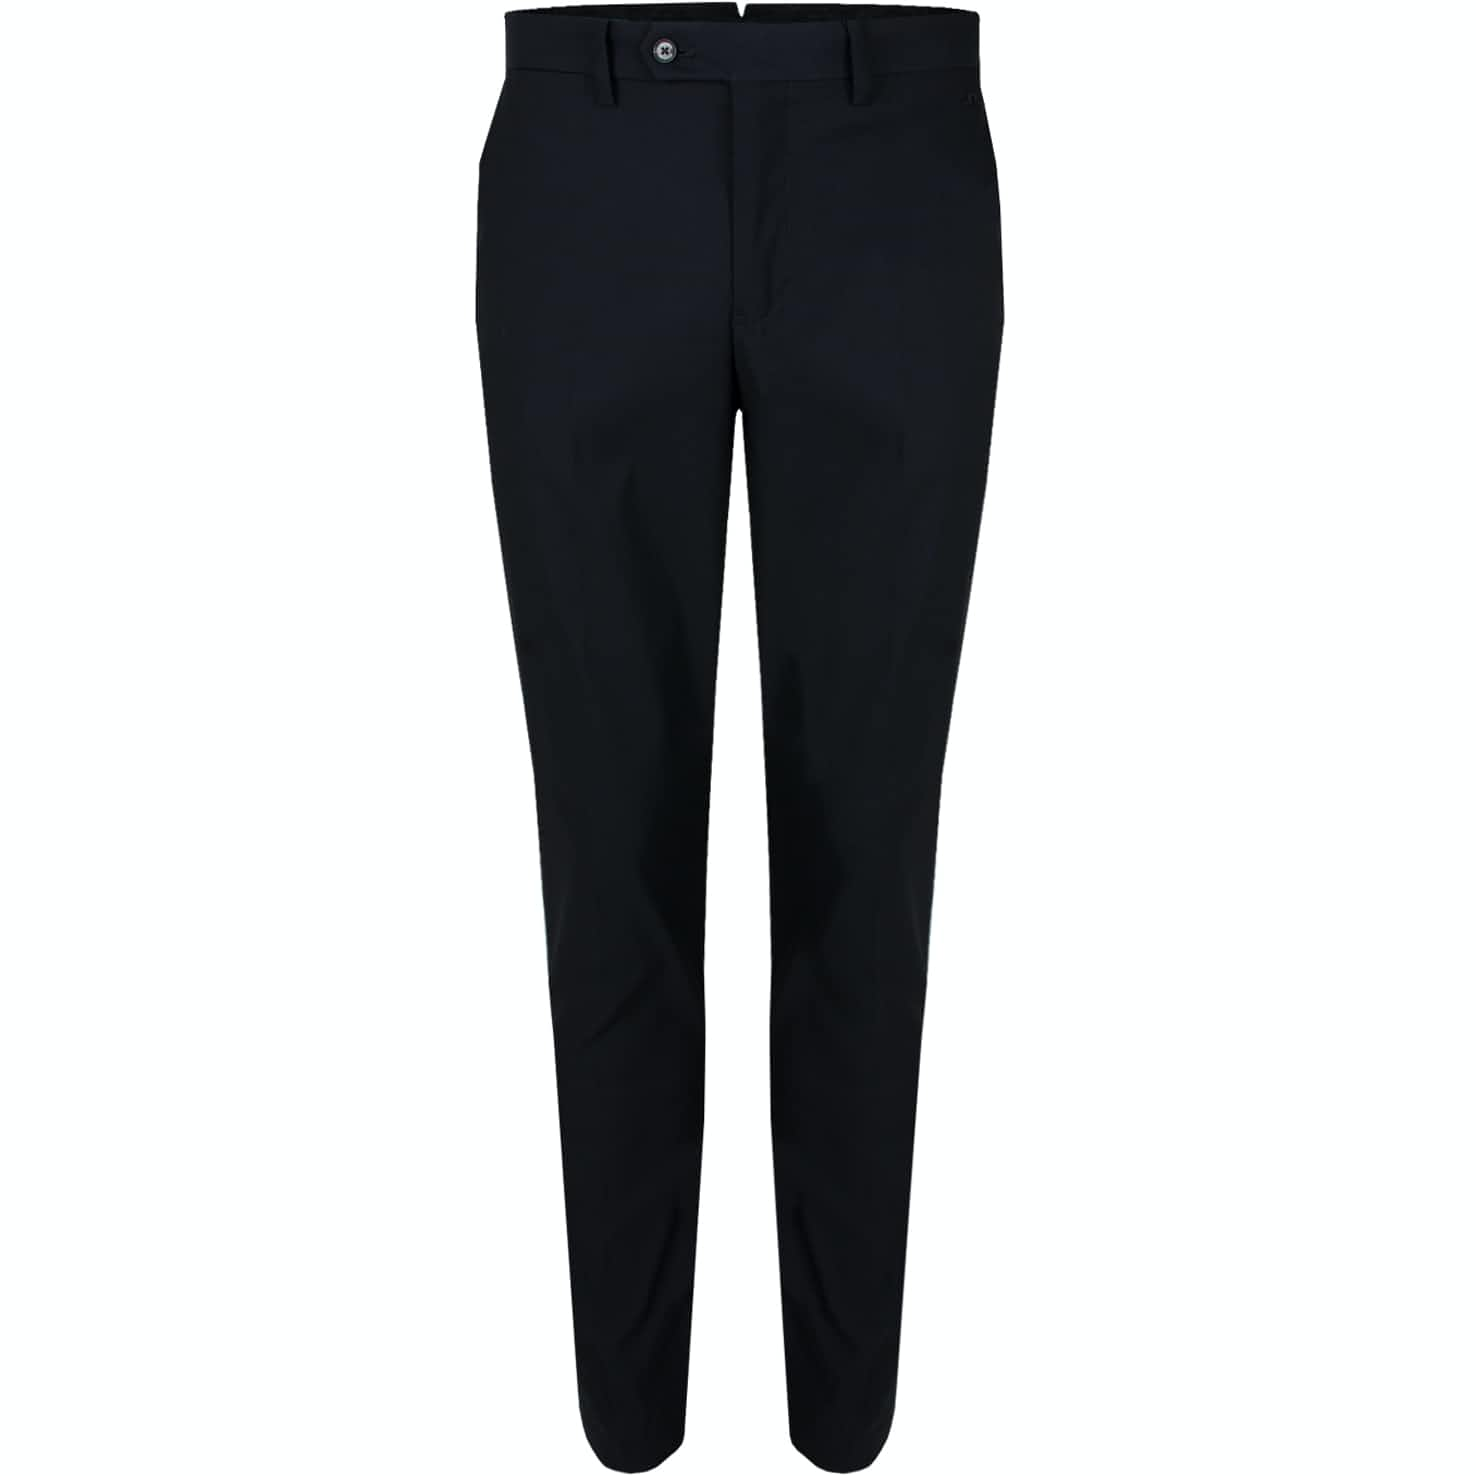 Palmer Tight Fit Schoeller 3xDry Black - 2018